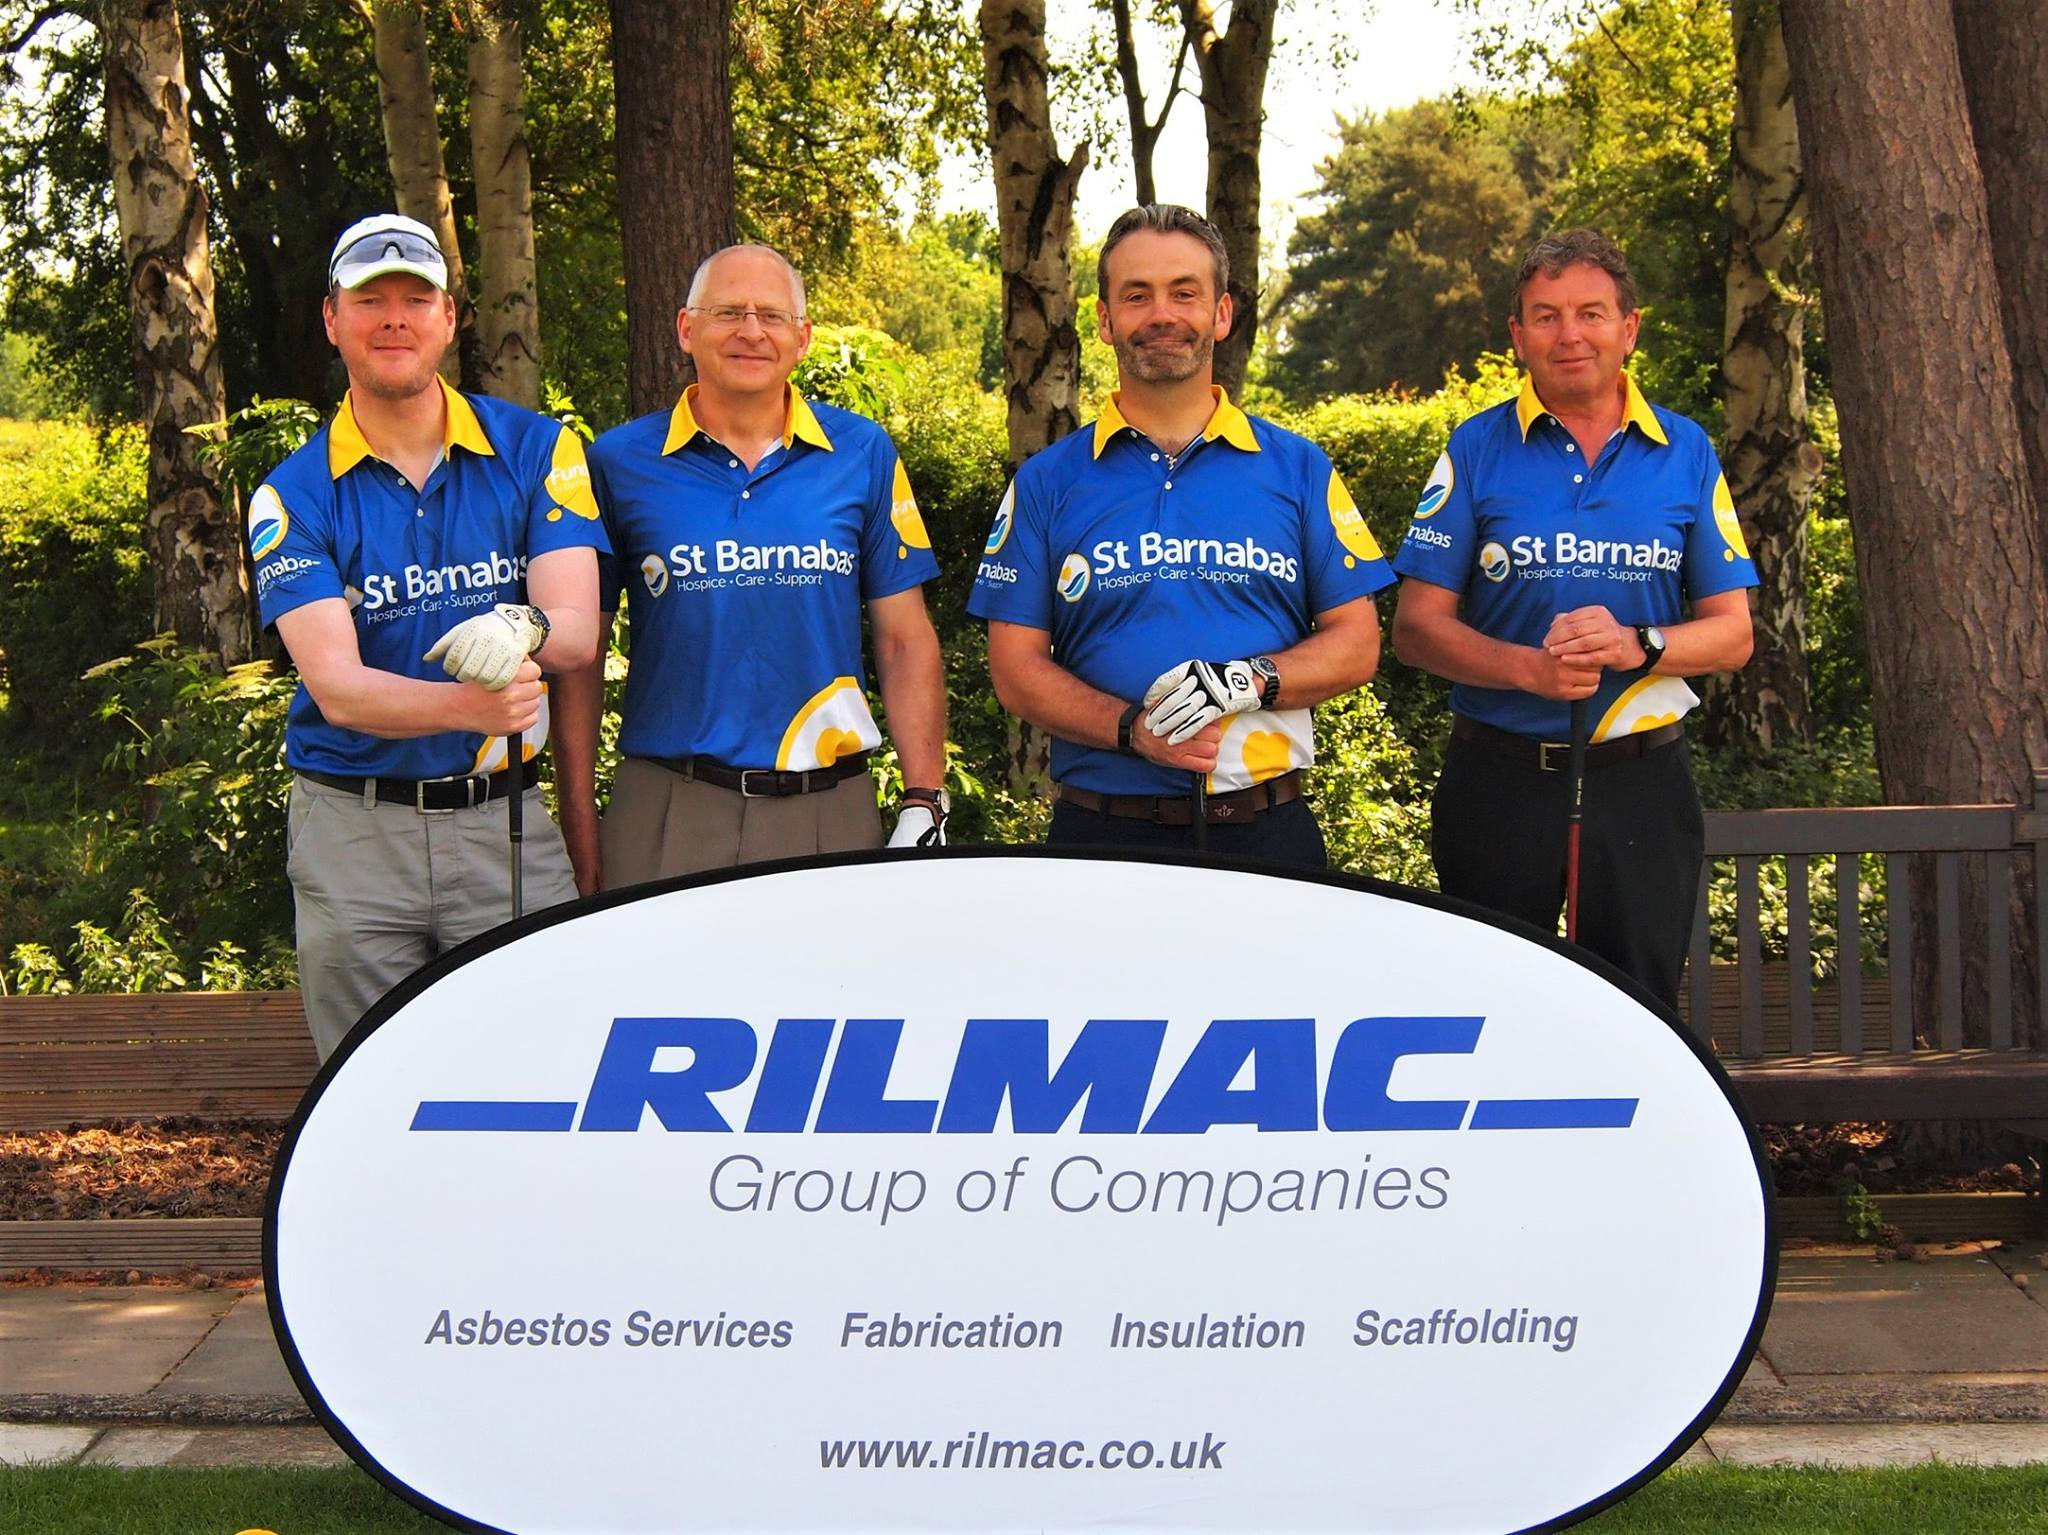 Join St Barnabas at the annual Rilmac Golf Day in Market Rasen